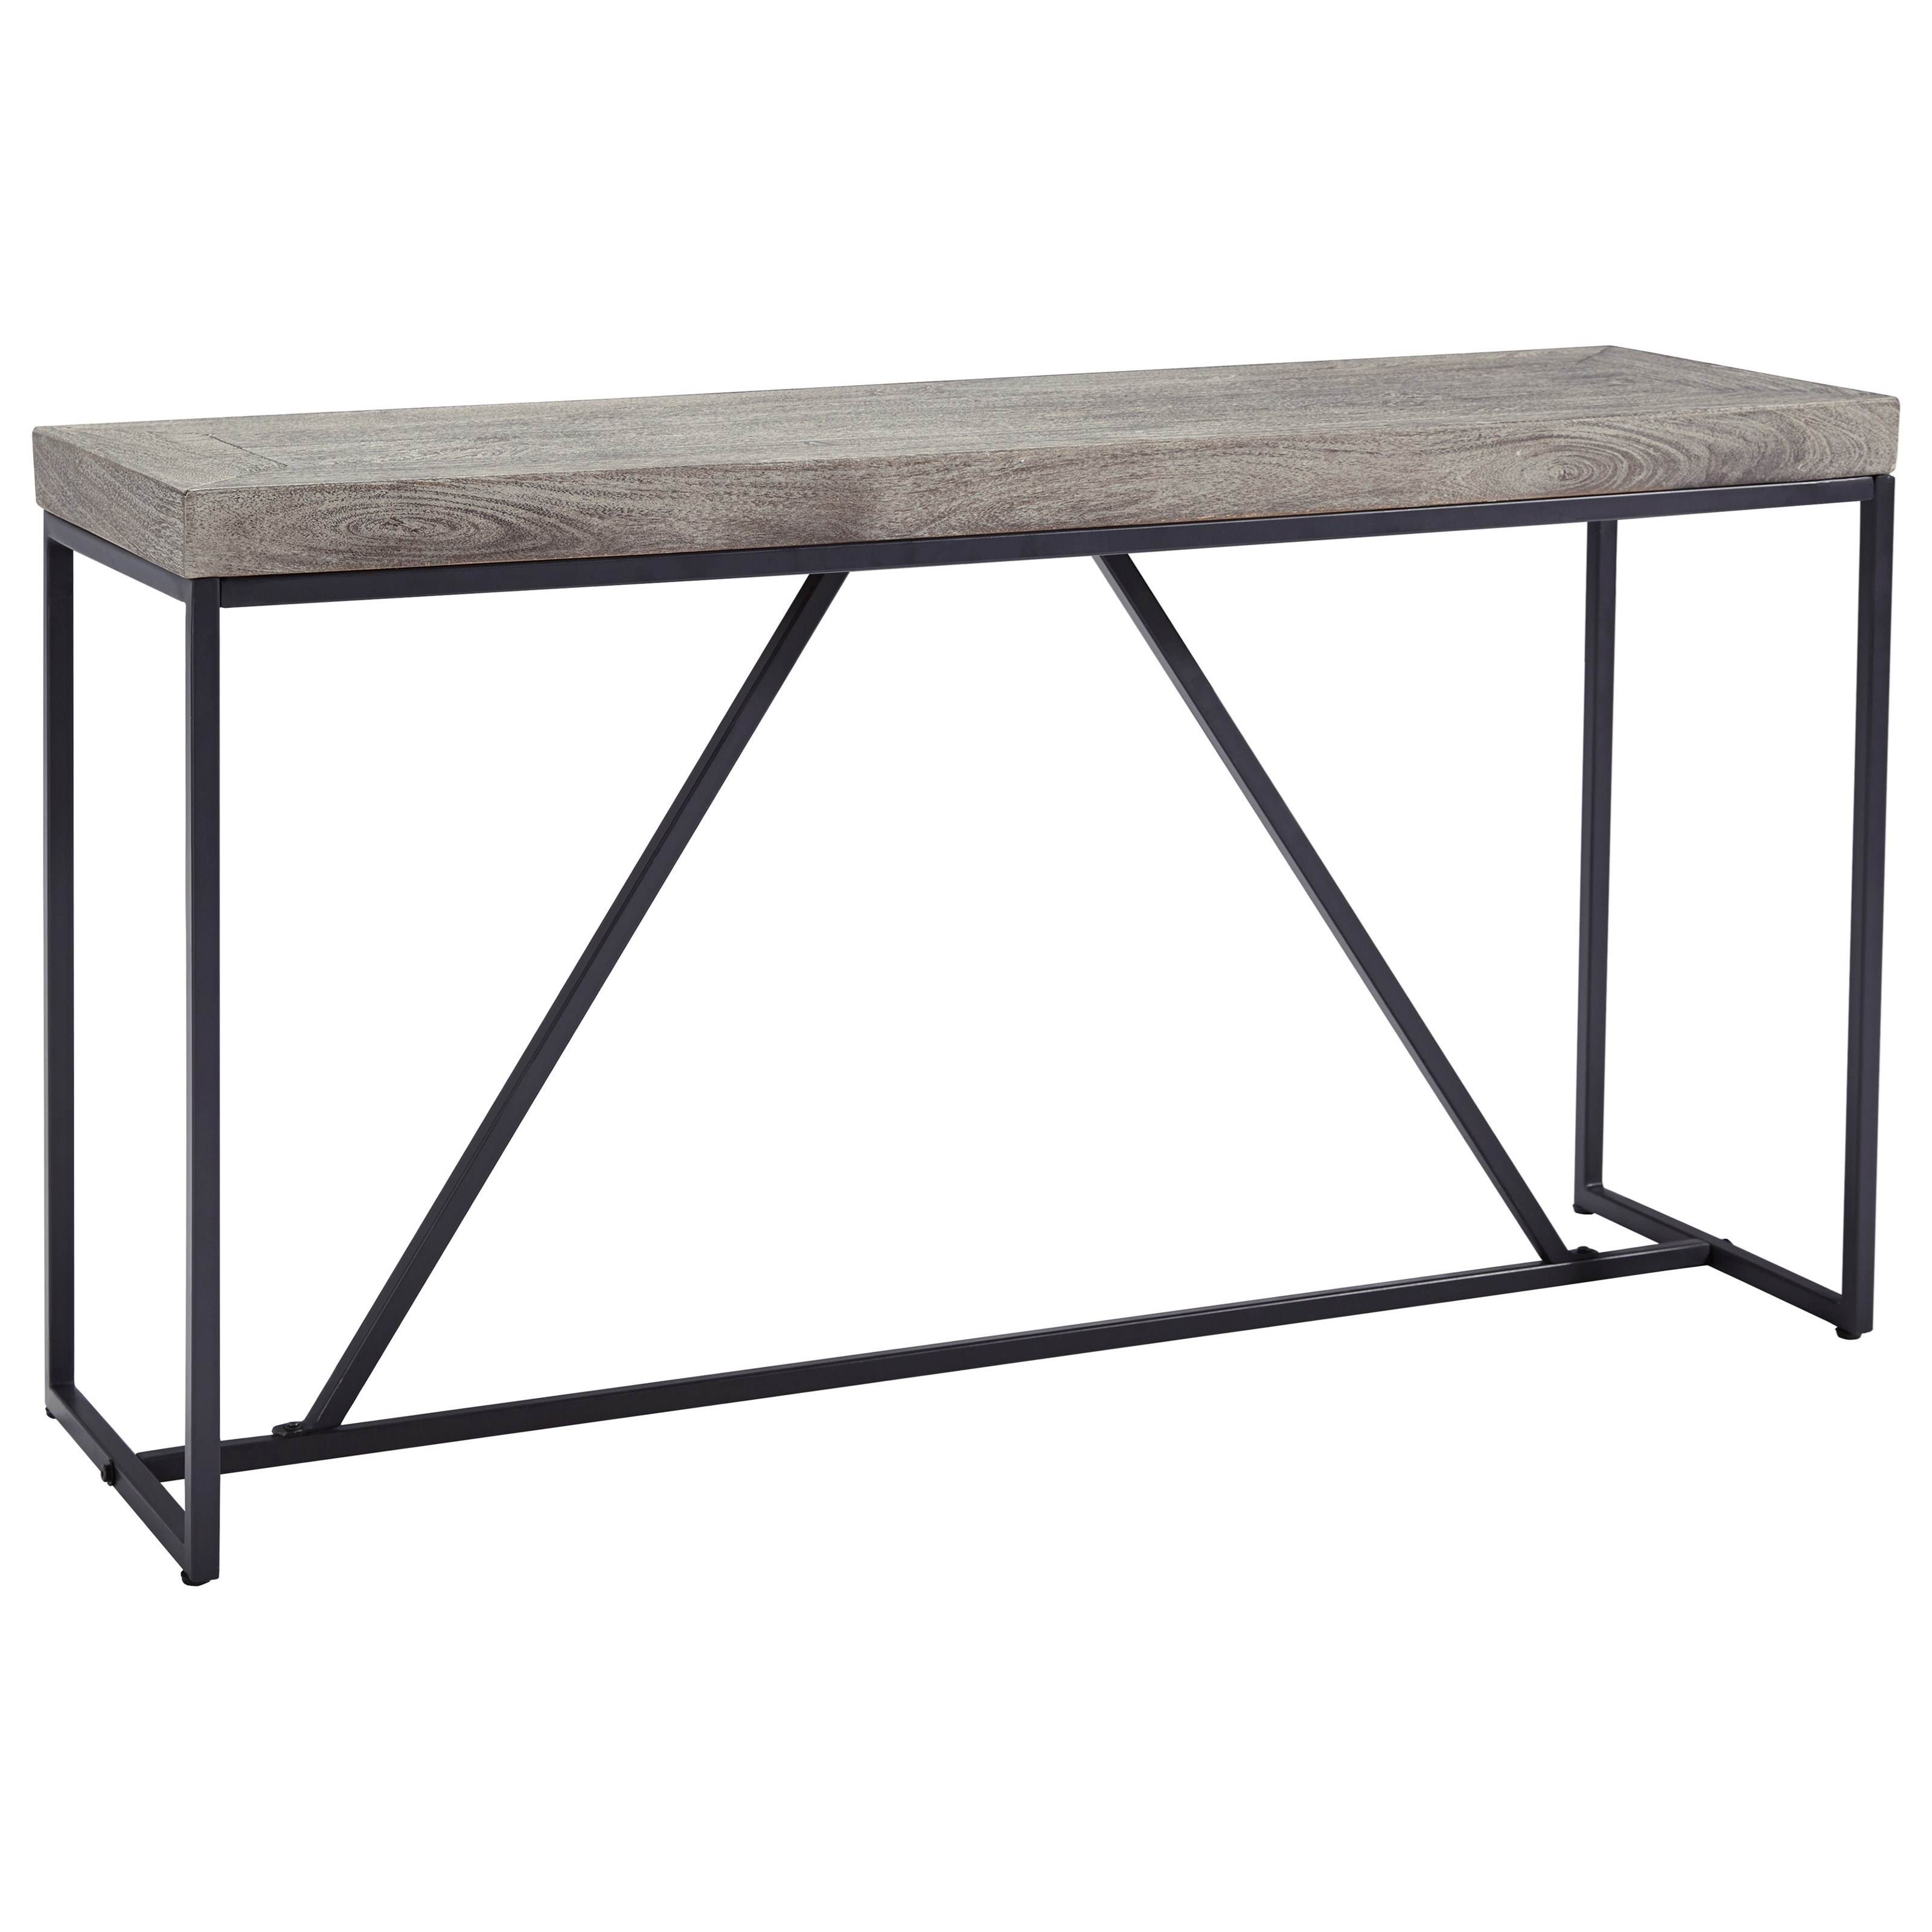 Signature Design by Ashley Brazin Console Table - Item Number: T897-4